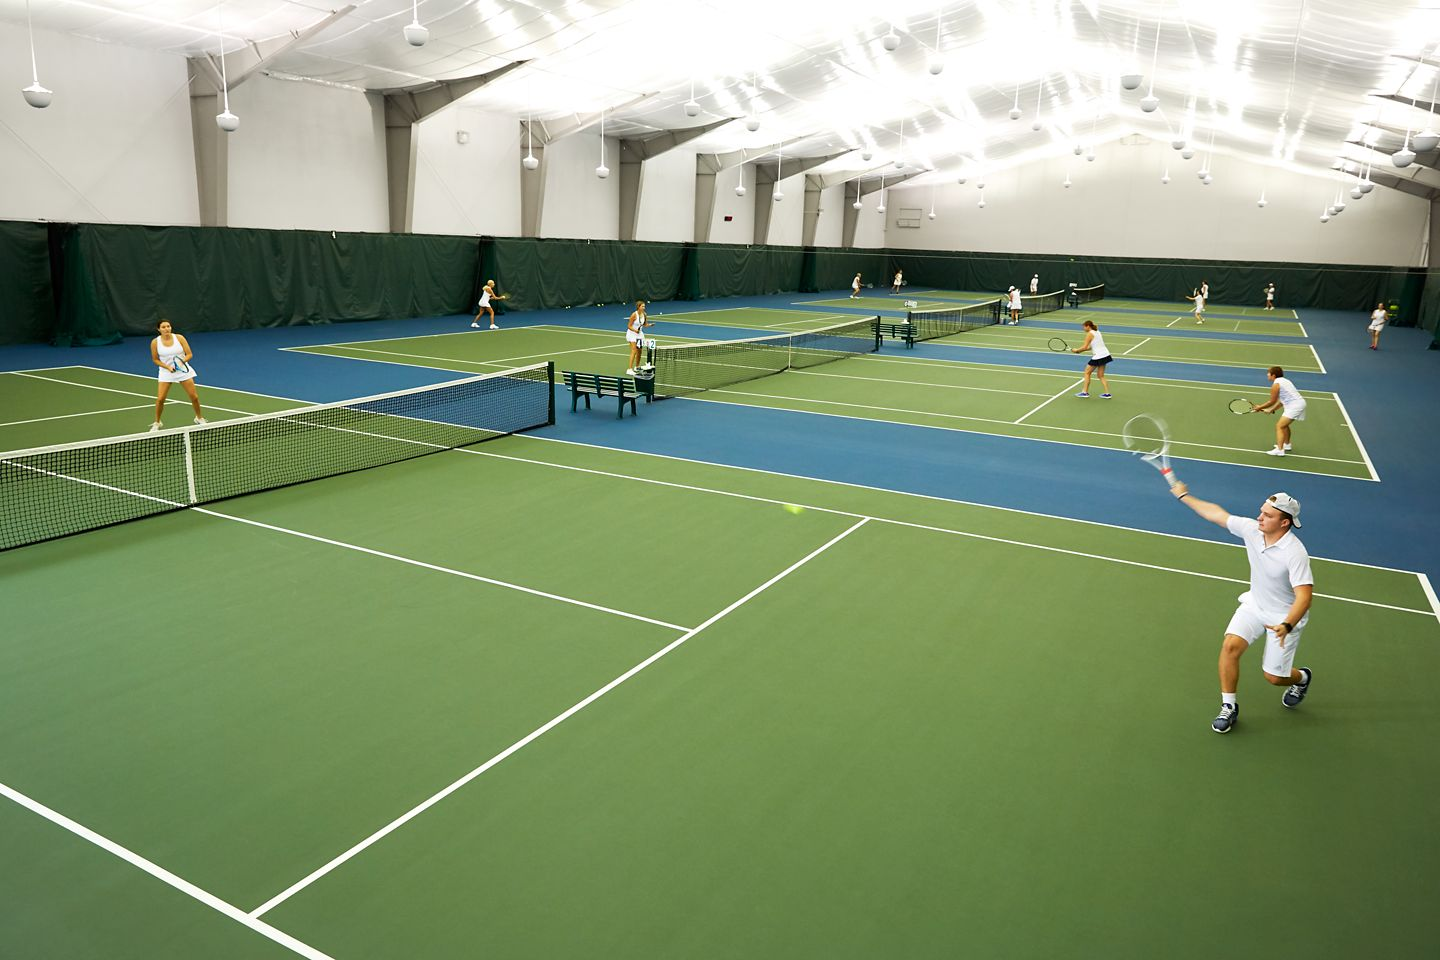 Tennis players playing on indoor courts